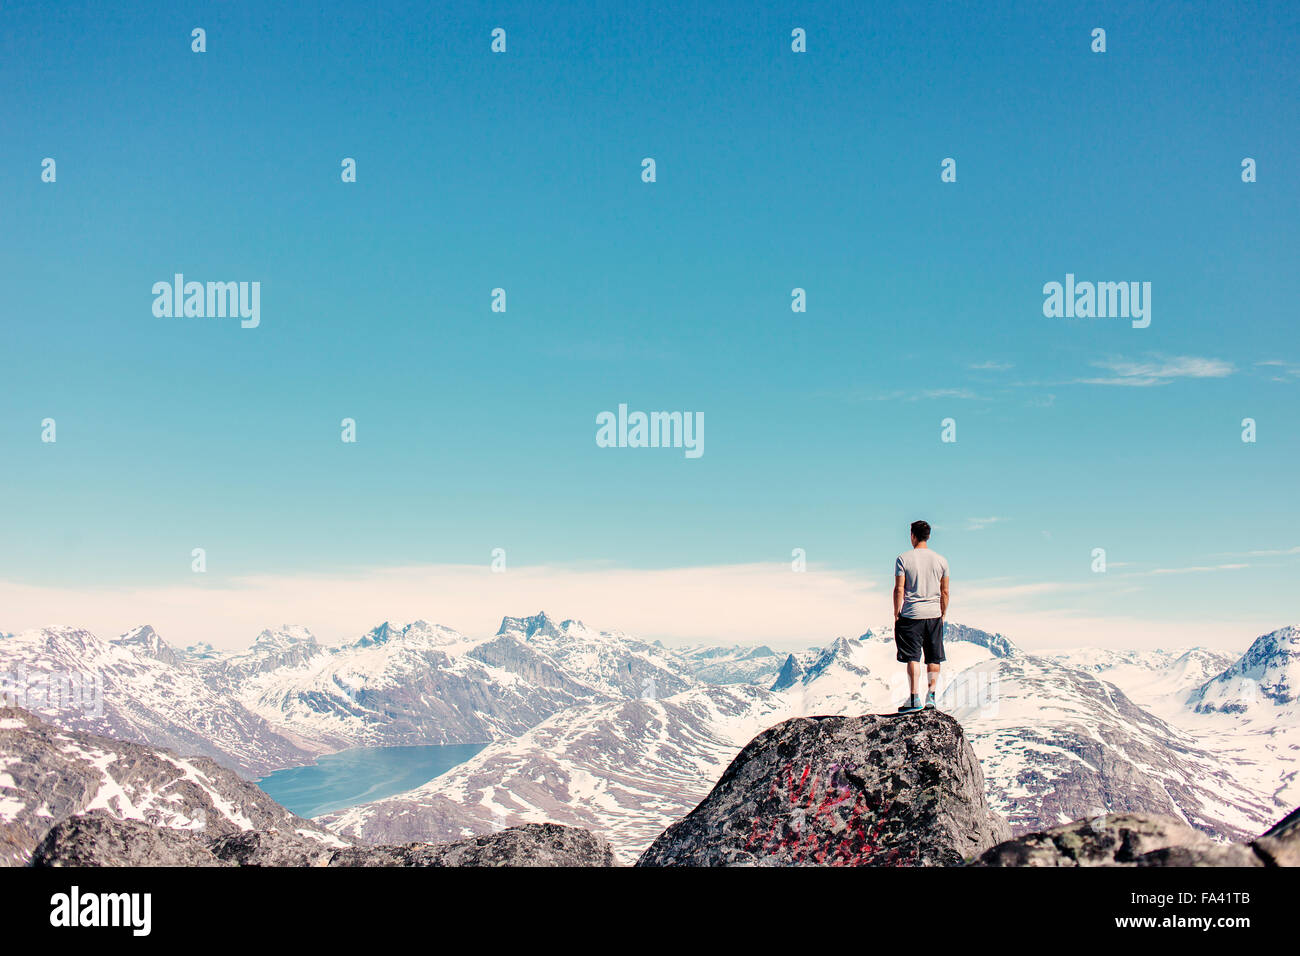 Rear view of man standing on top of rock looking at snow covered mountains - Stock Image